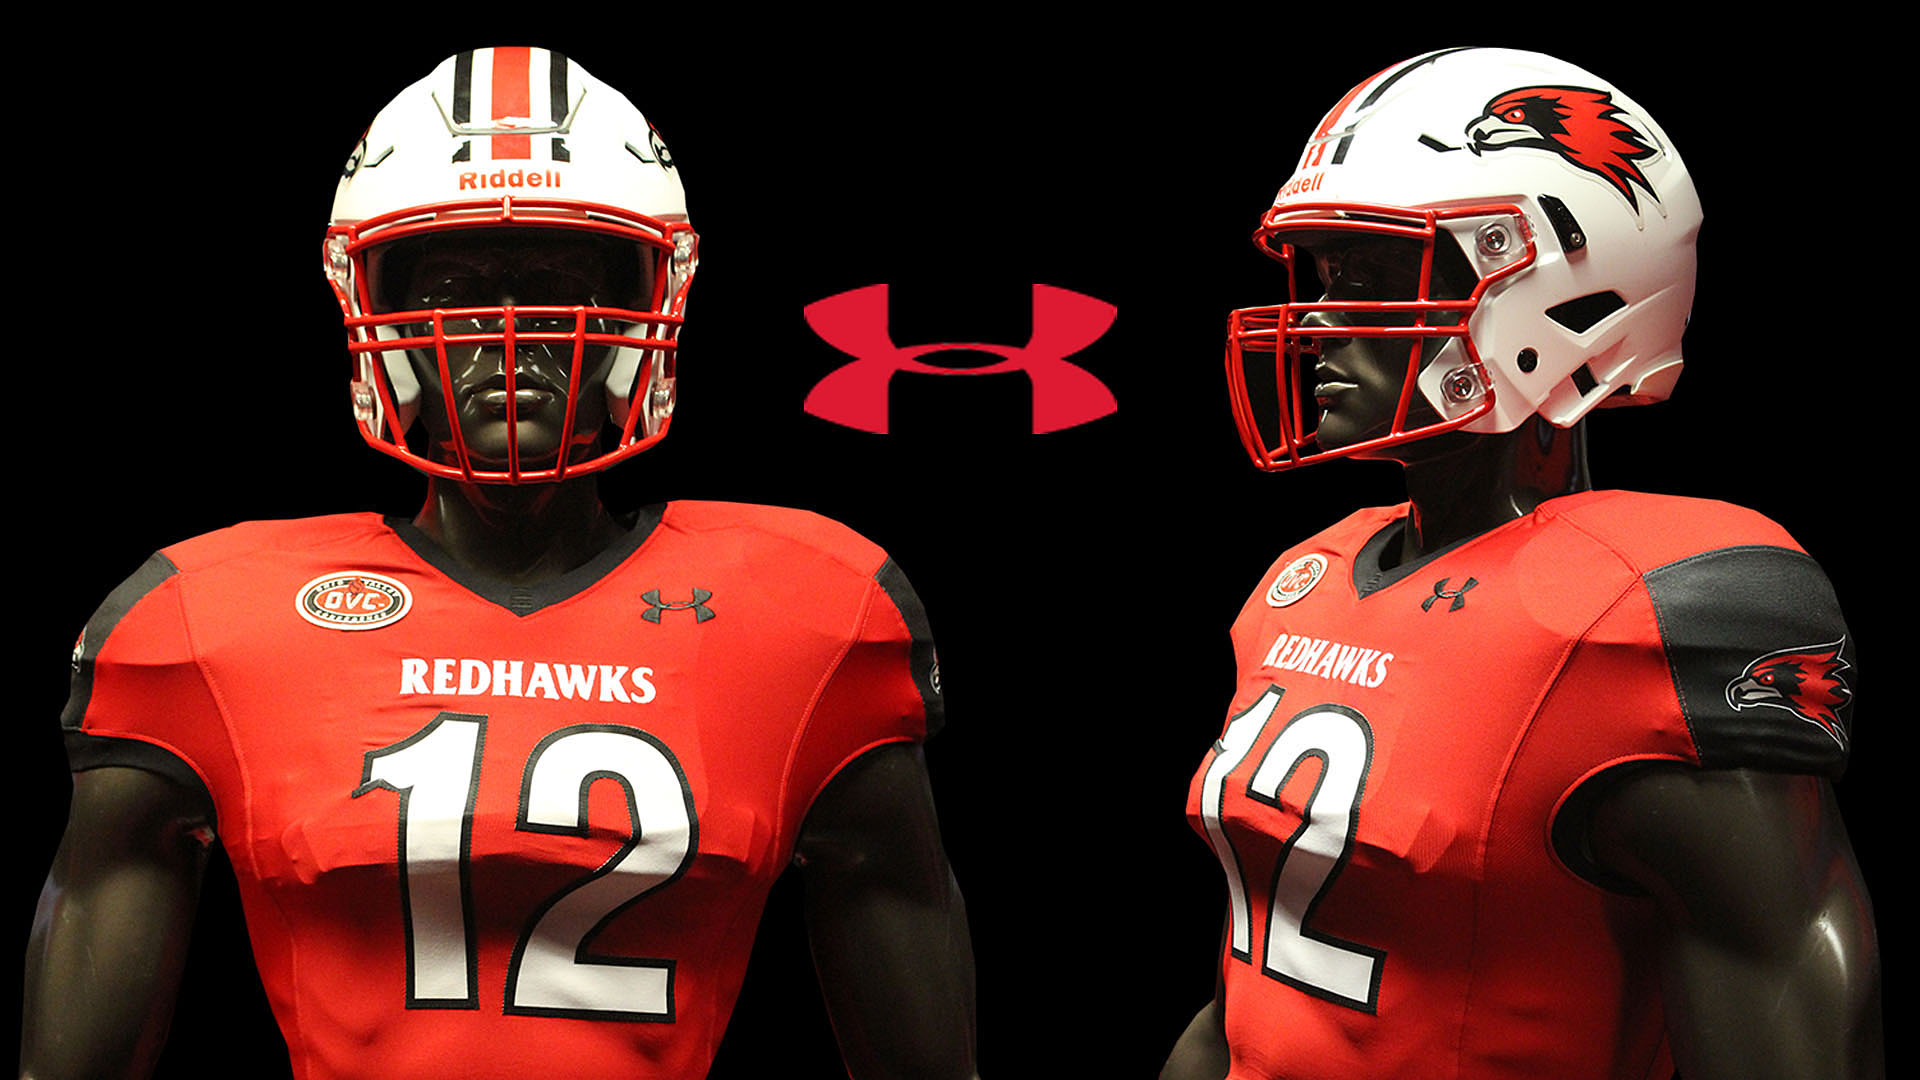 official photos 3f1ce ca05b Redhawks Unveil New Red Under Armour Uniforms for Saturday's ...